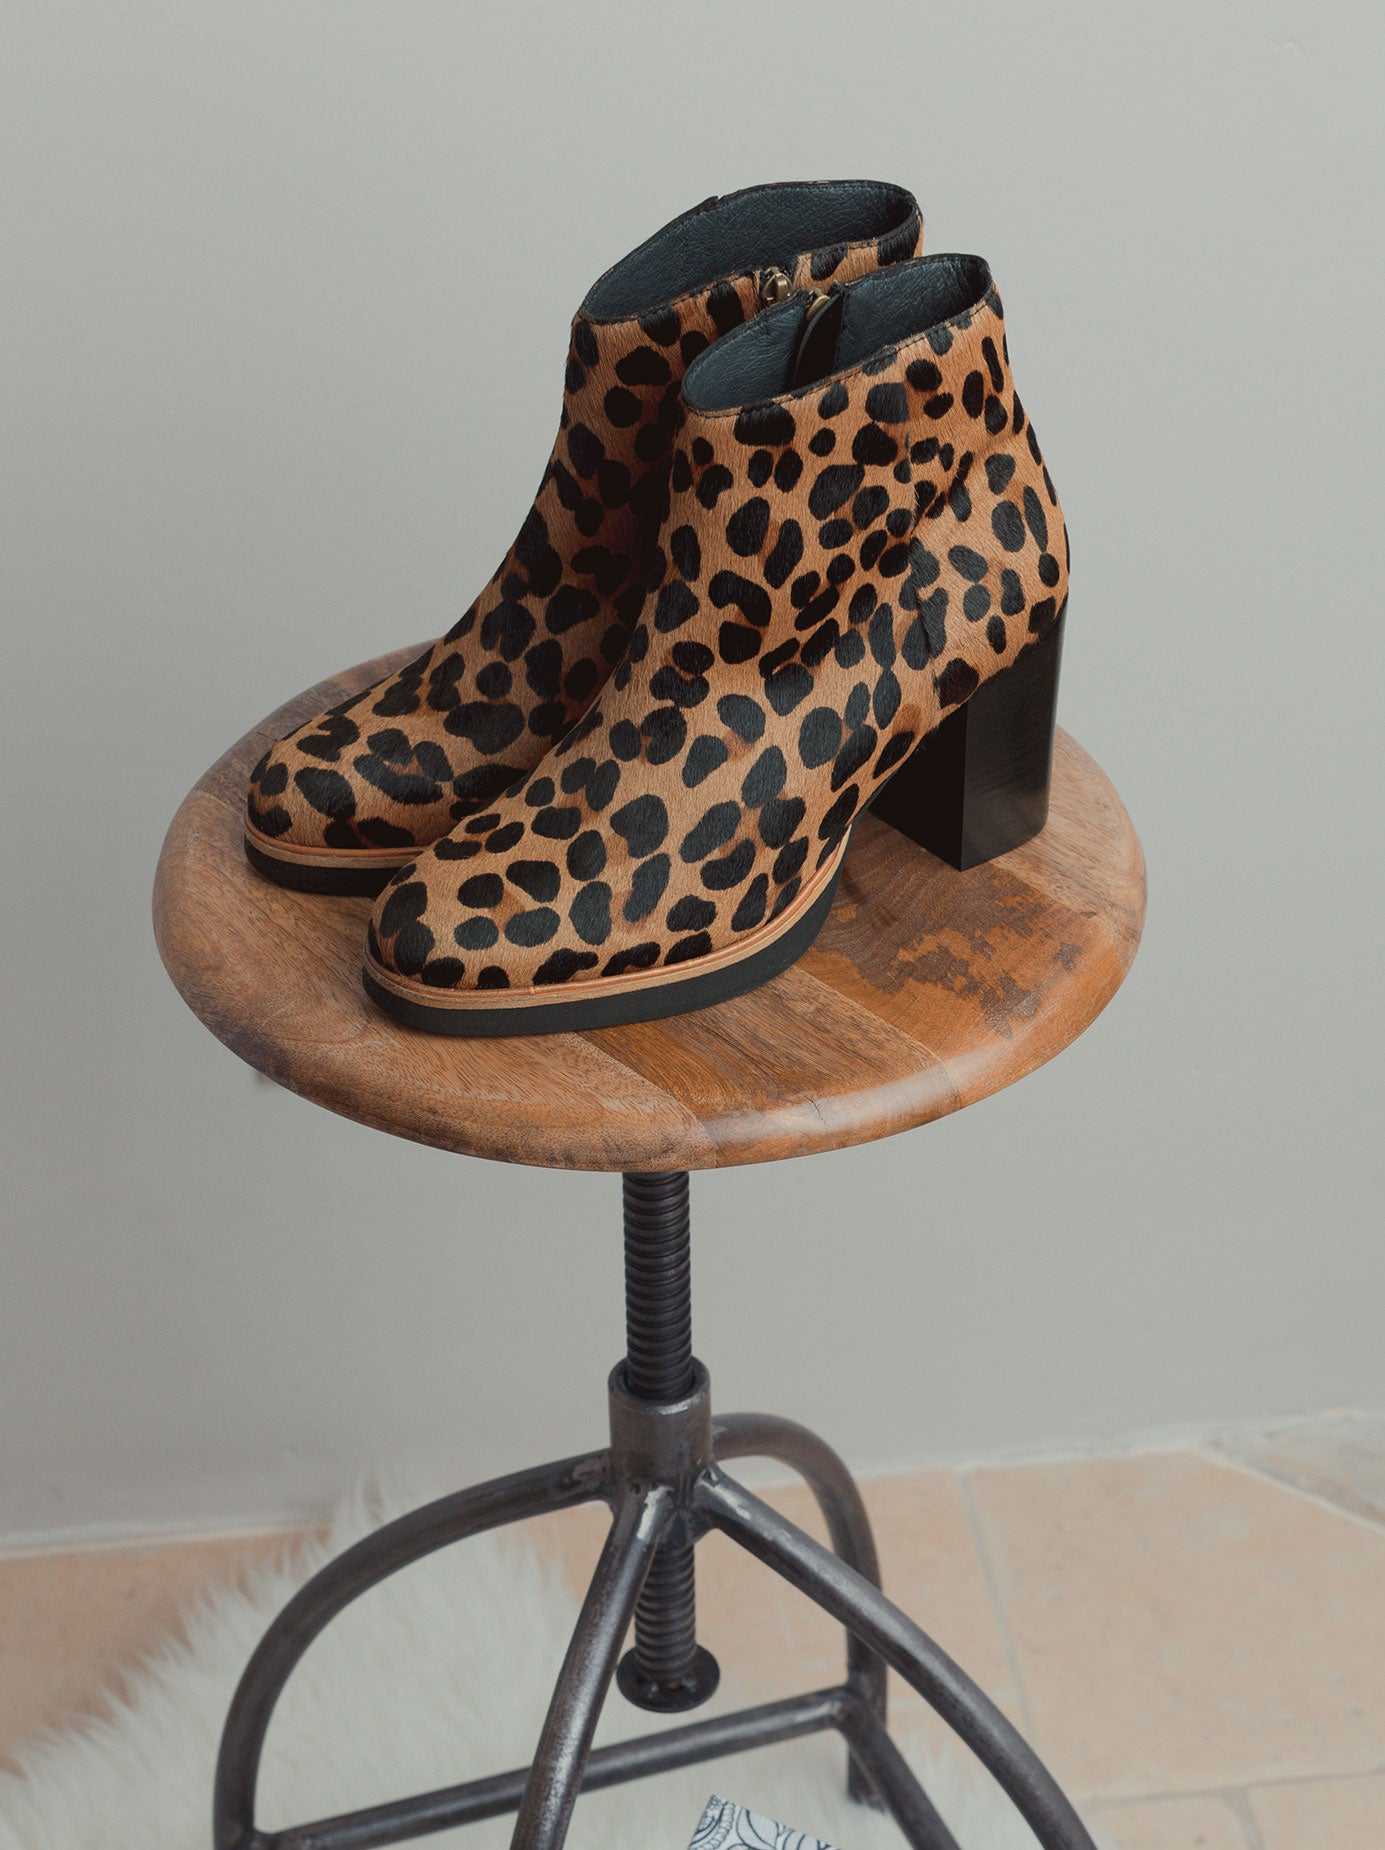 Hair leather boot with E.V.A platform sole - comfortable heel height.